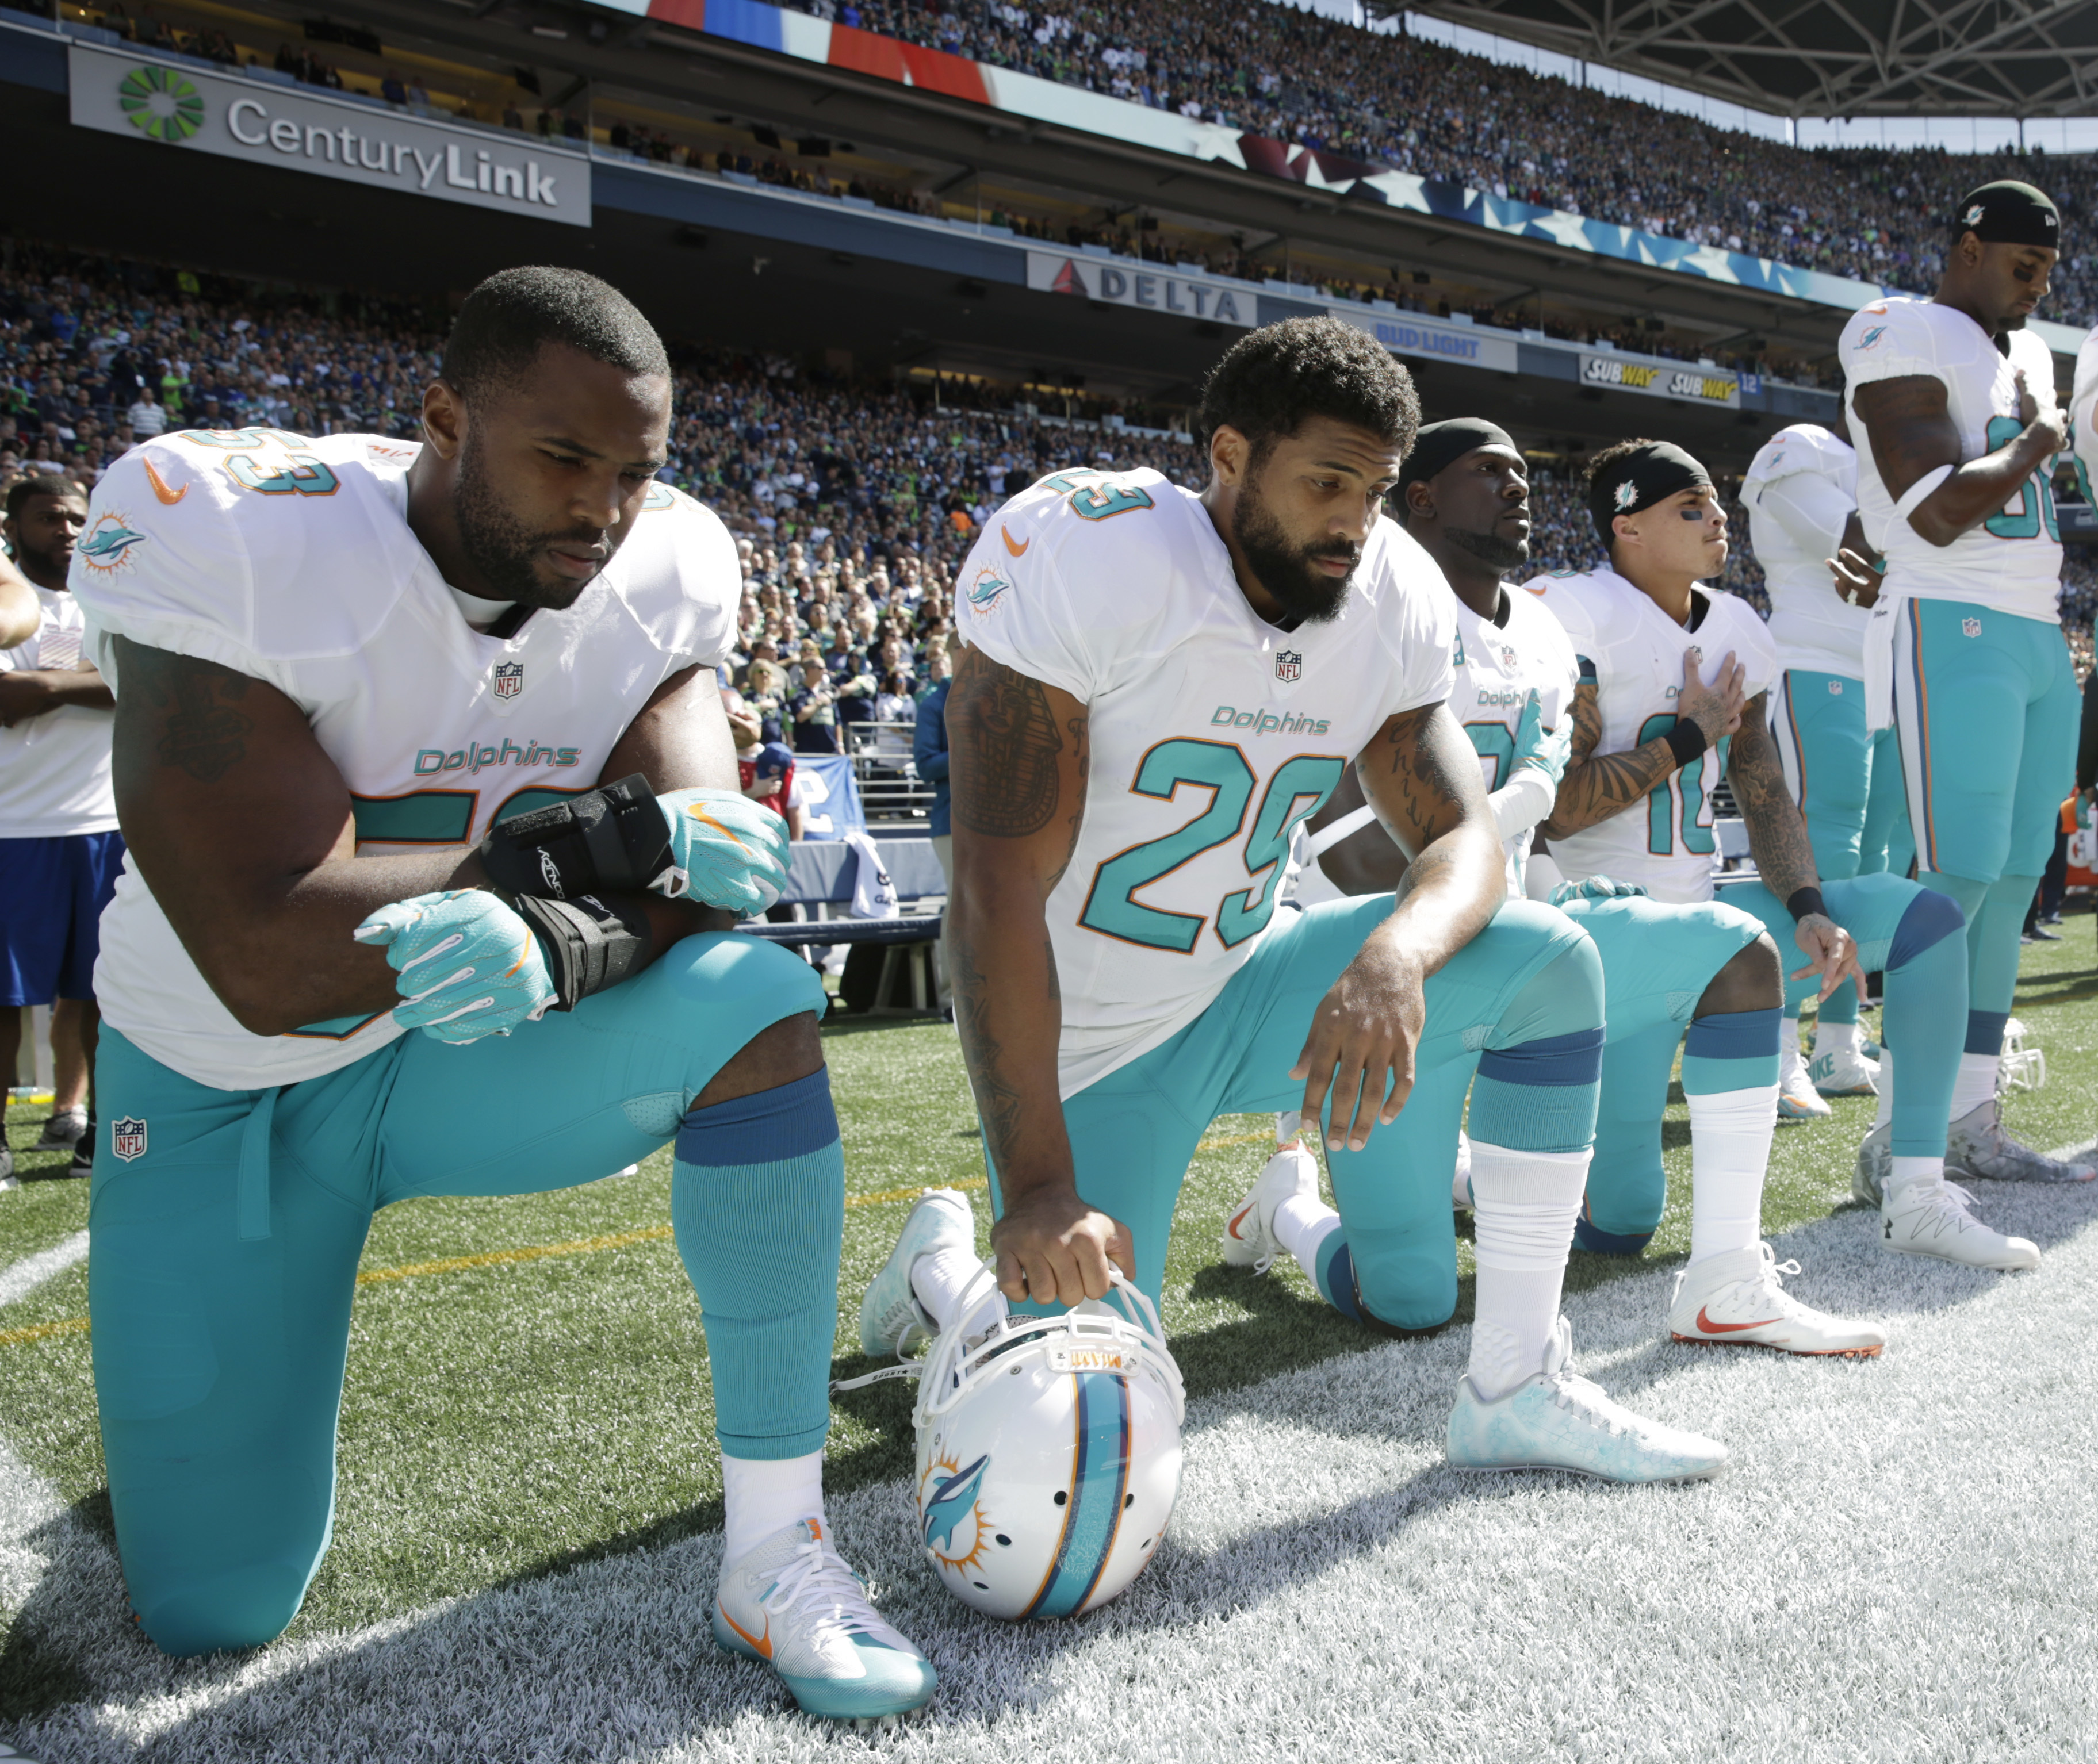 FILE - In this Sept. 11, 2016, file photo, from left, Miami Dolphins' Jelani Jenkins, Arian Foster, Michael Thomas, and Kenny Stills kneel during the singing of the national anthem before an NFL football game against the Seattle Seahawks in Seattle. Miami